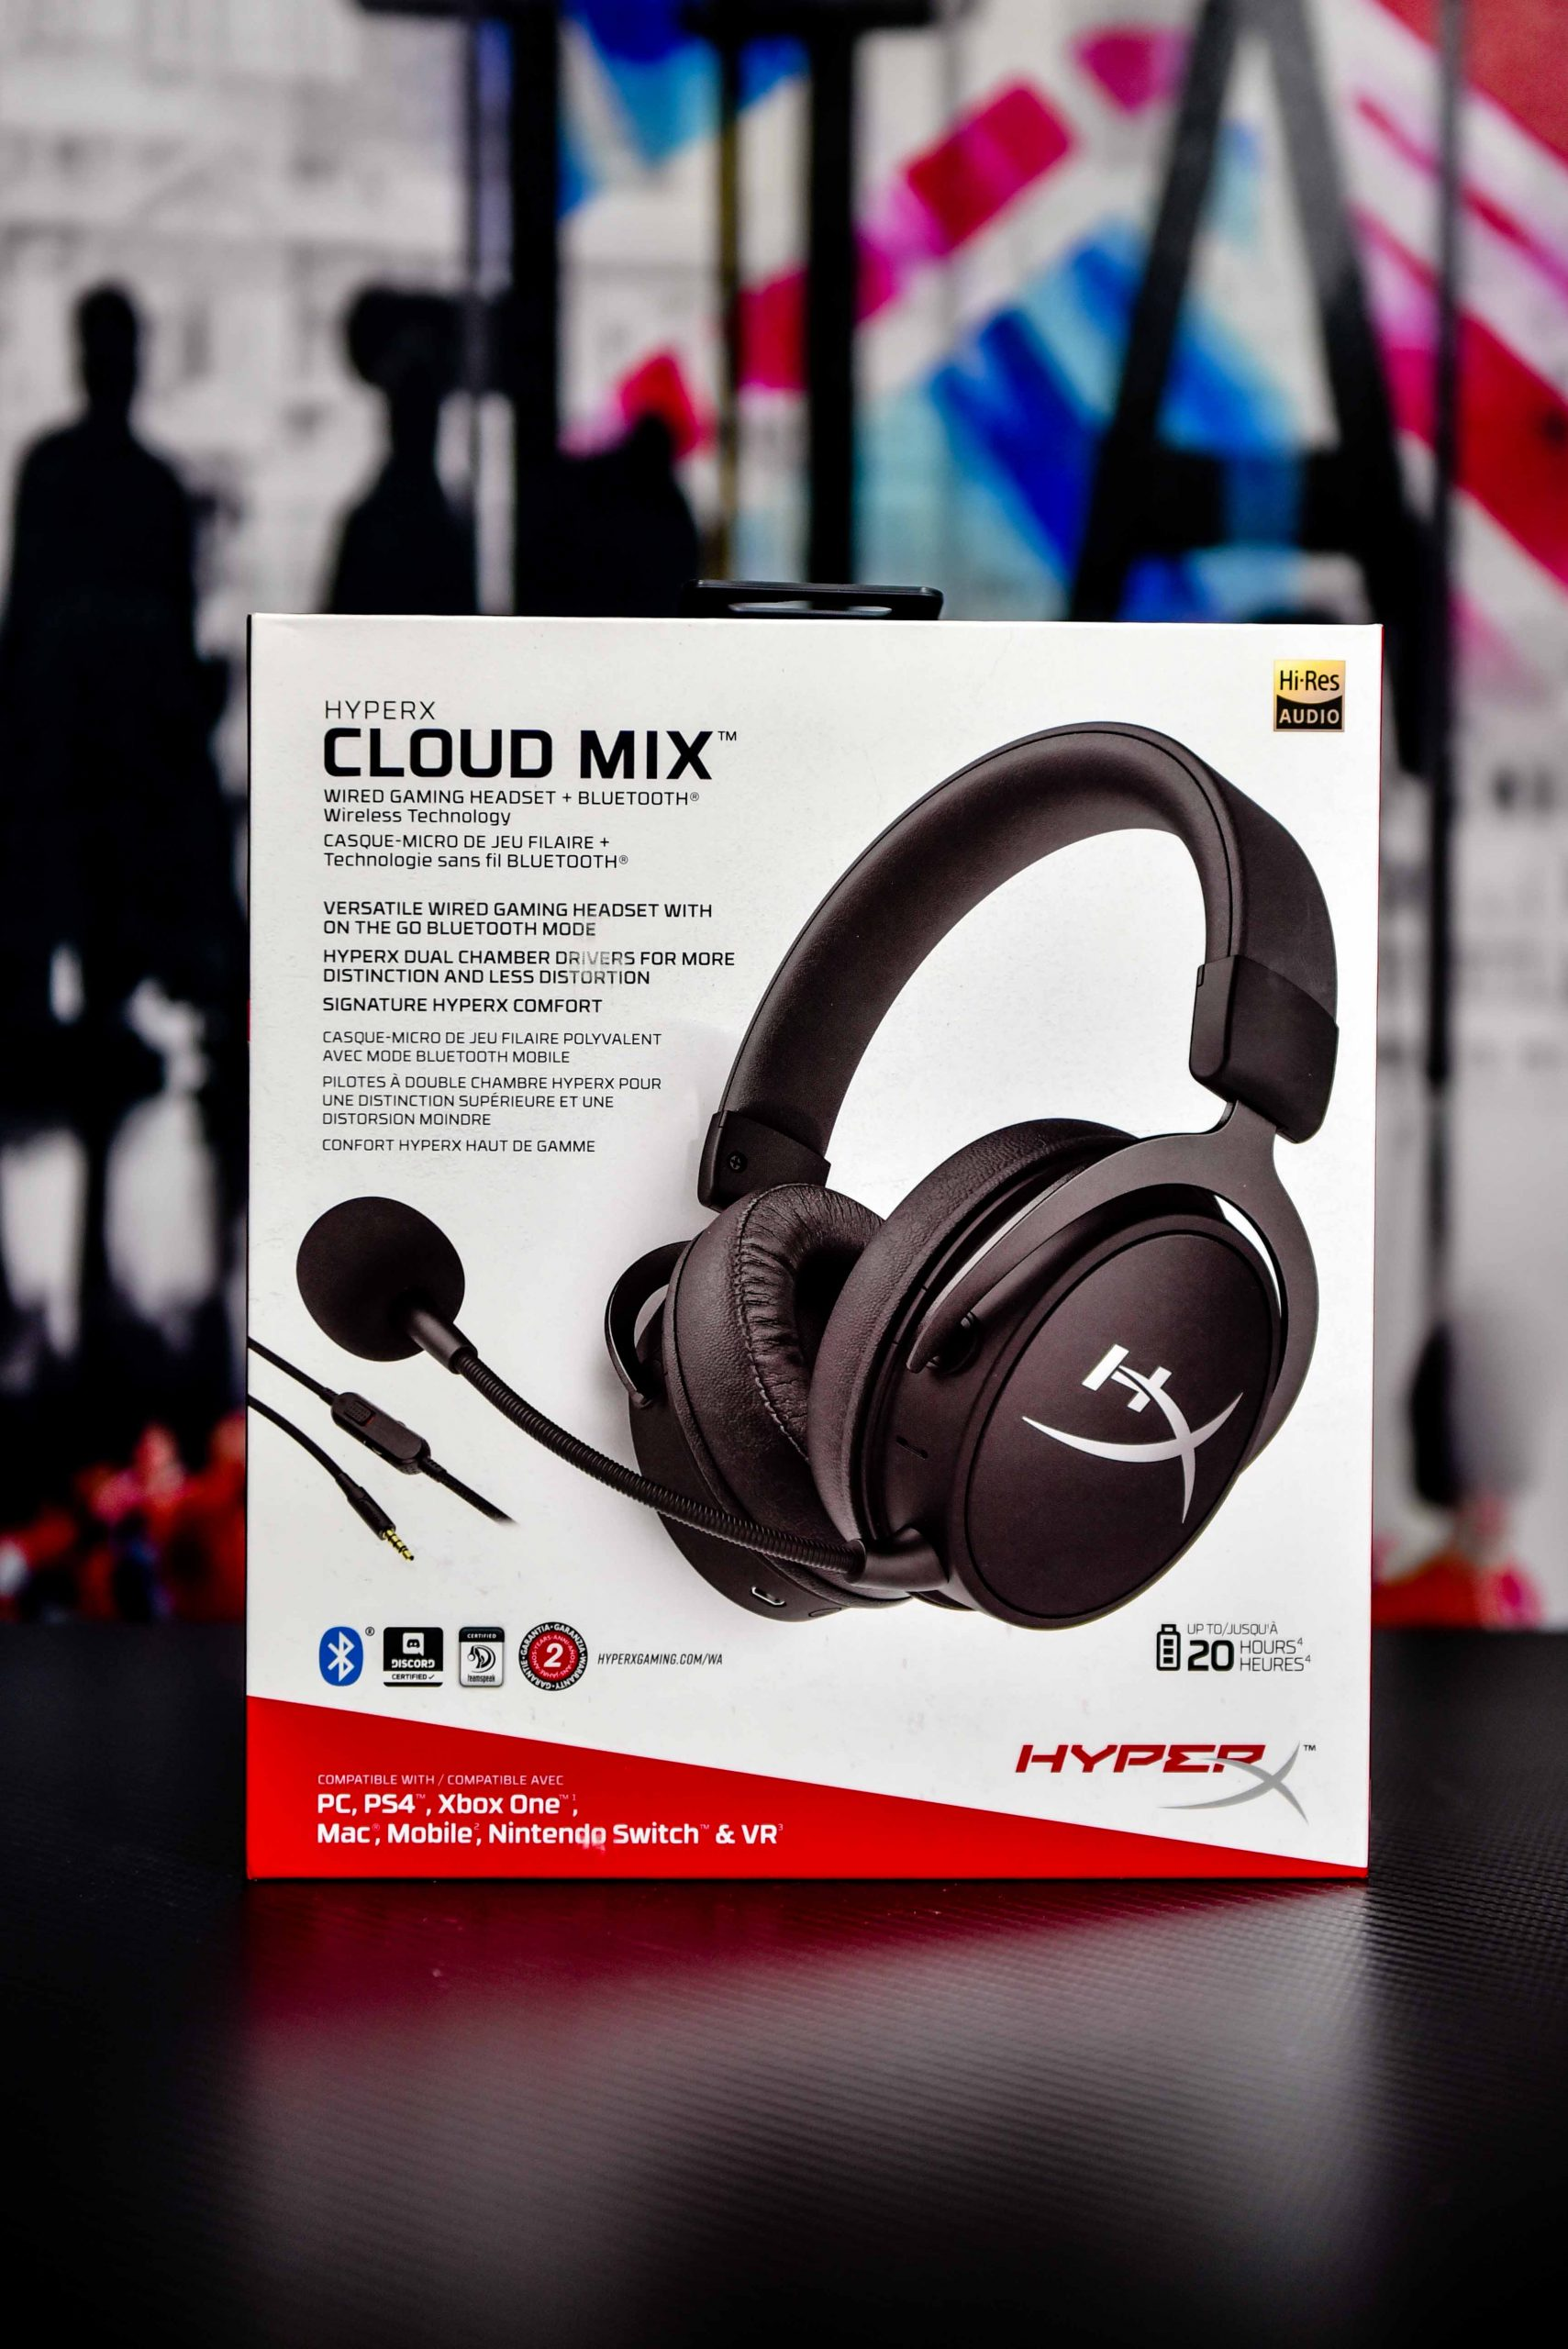 HYPERX CLOUD MIX -Wire & Bluetooth Gaming Headset in Qatar